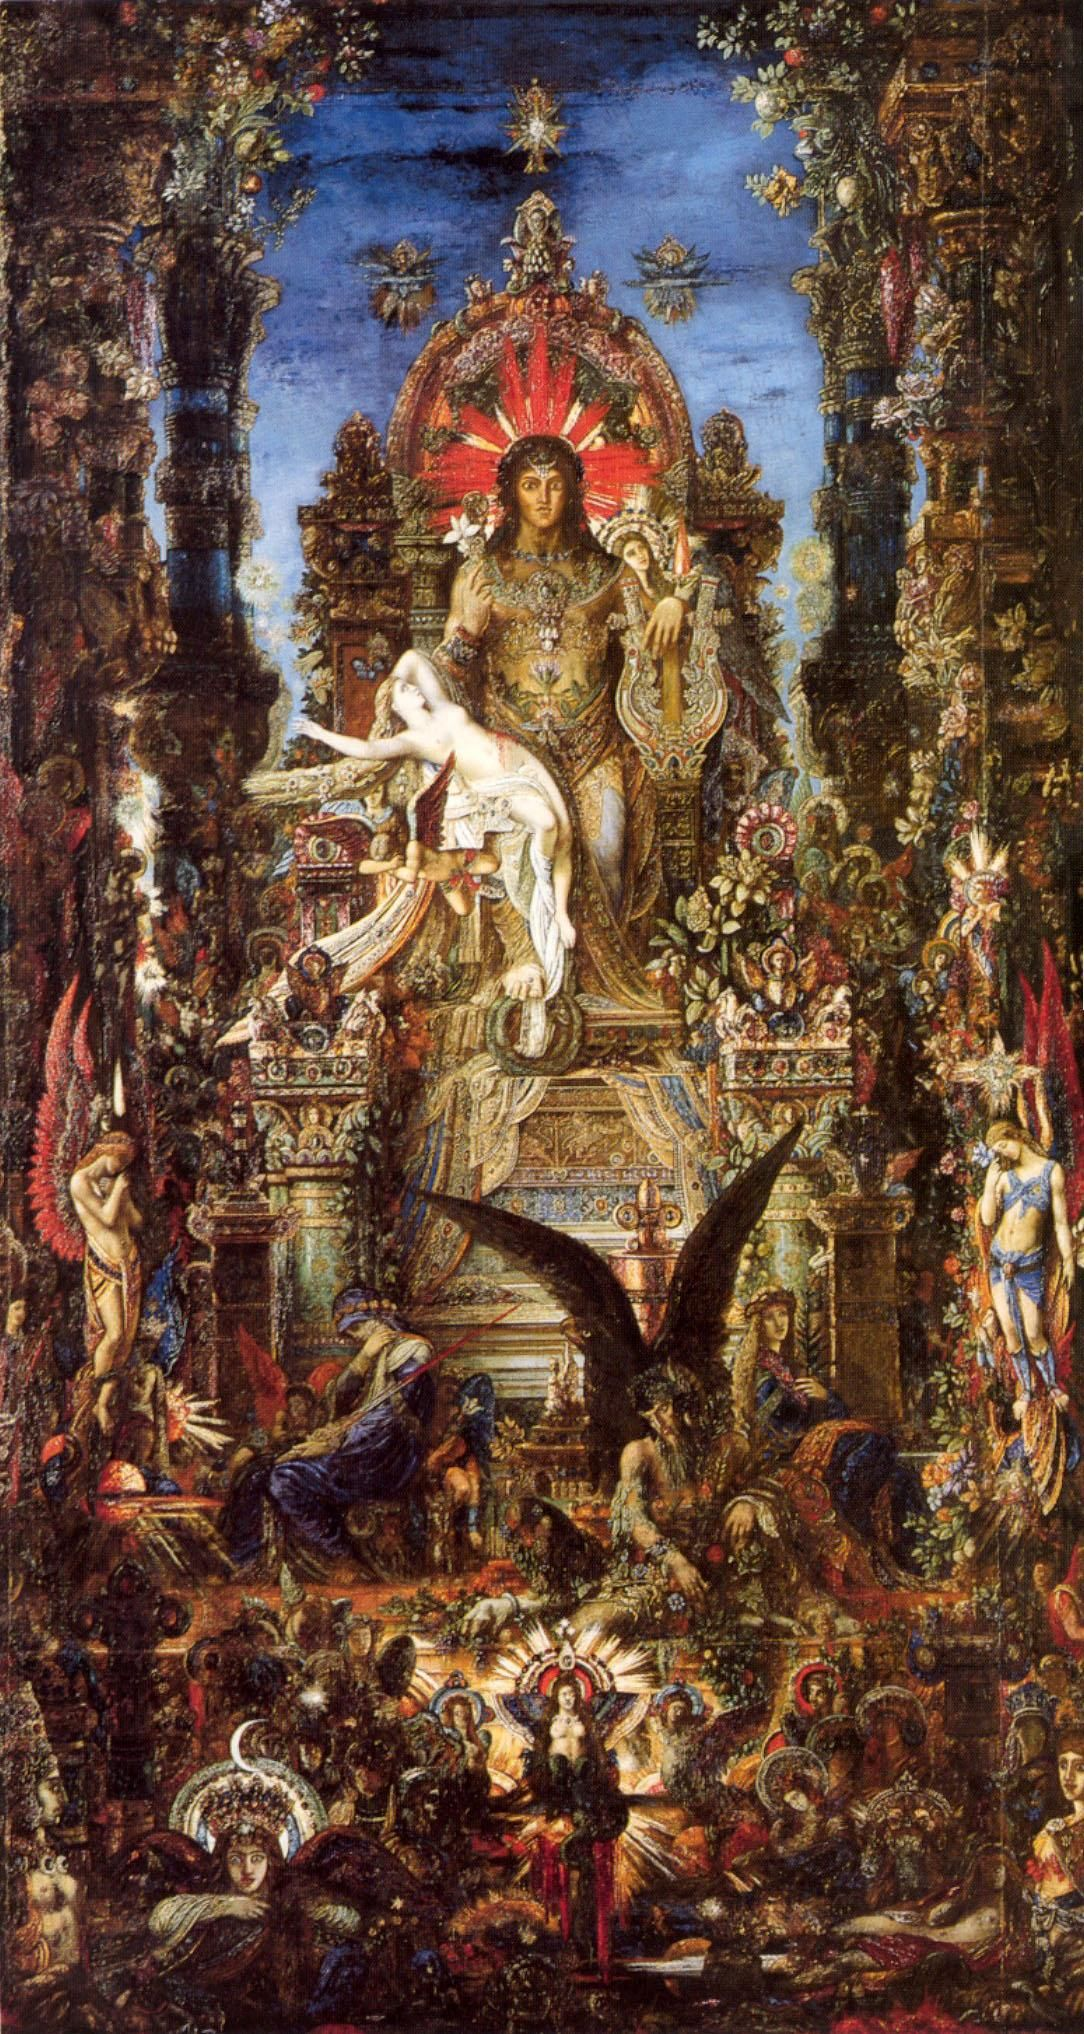 Symbolism gustave moreau exposition art blog pinterest art blog art blog symbolism gustave moreau biocorpaavc Image collections